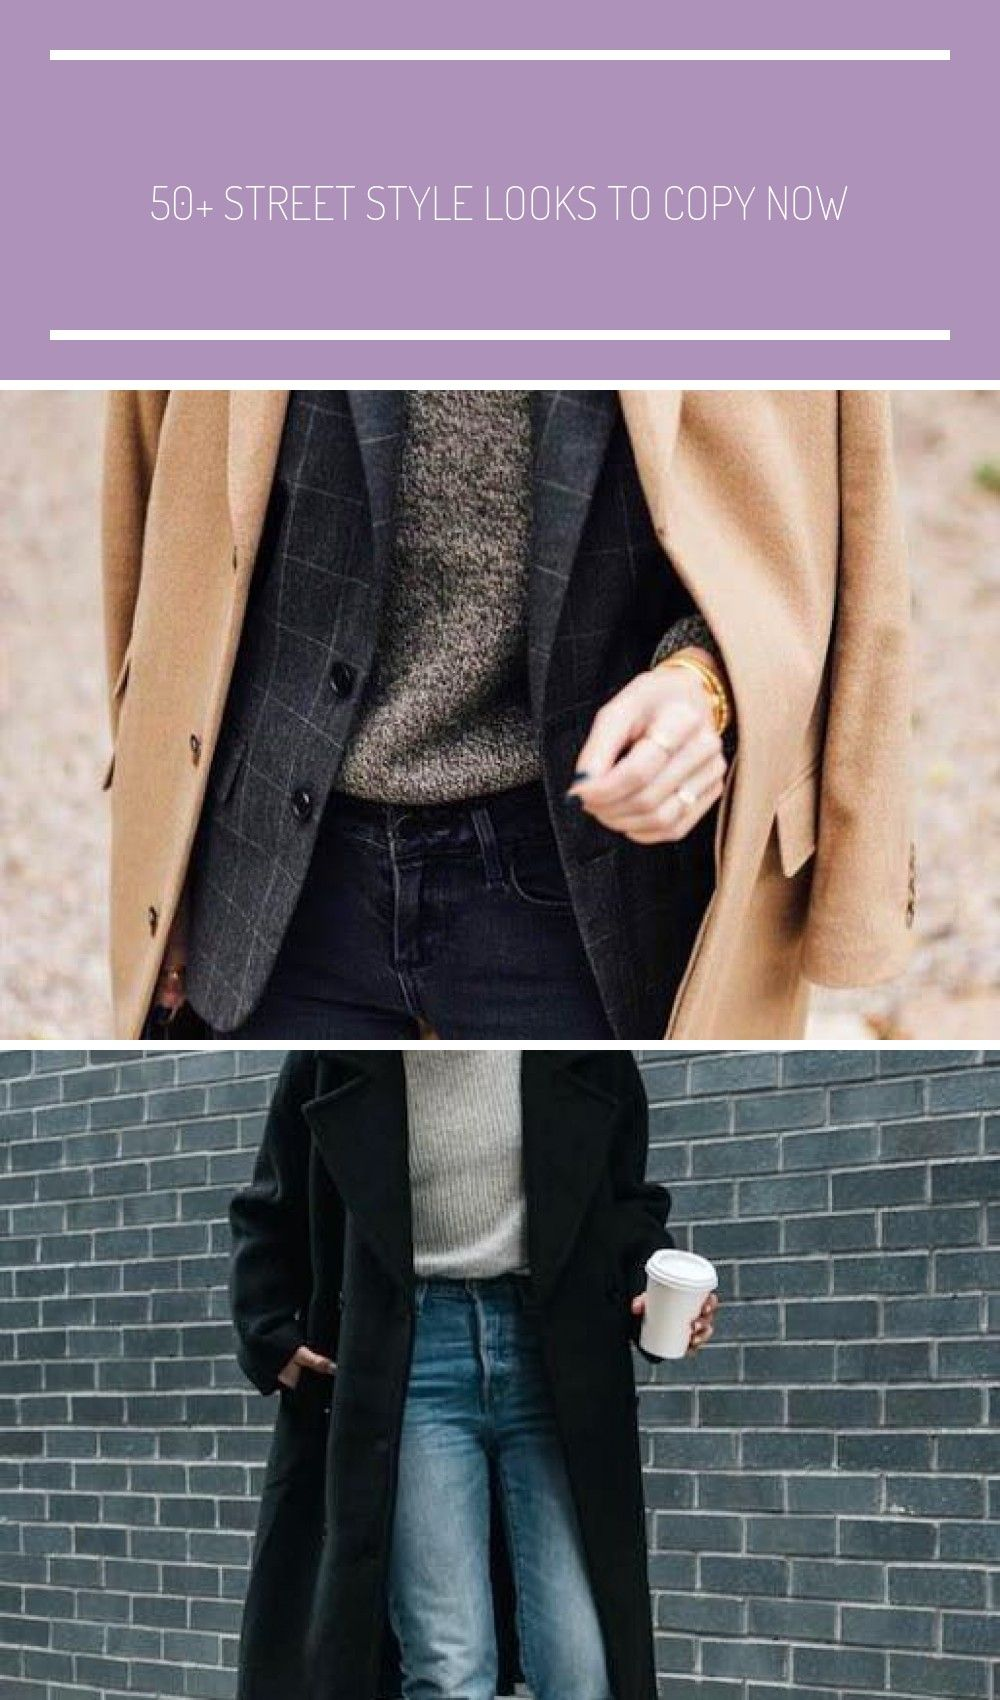 Street style fashion  fashion week Pinterest fromluxewithlove fashion preppy 50 Street Style Looks to Copy Now